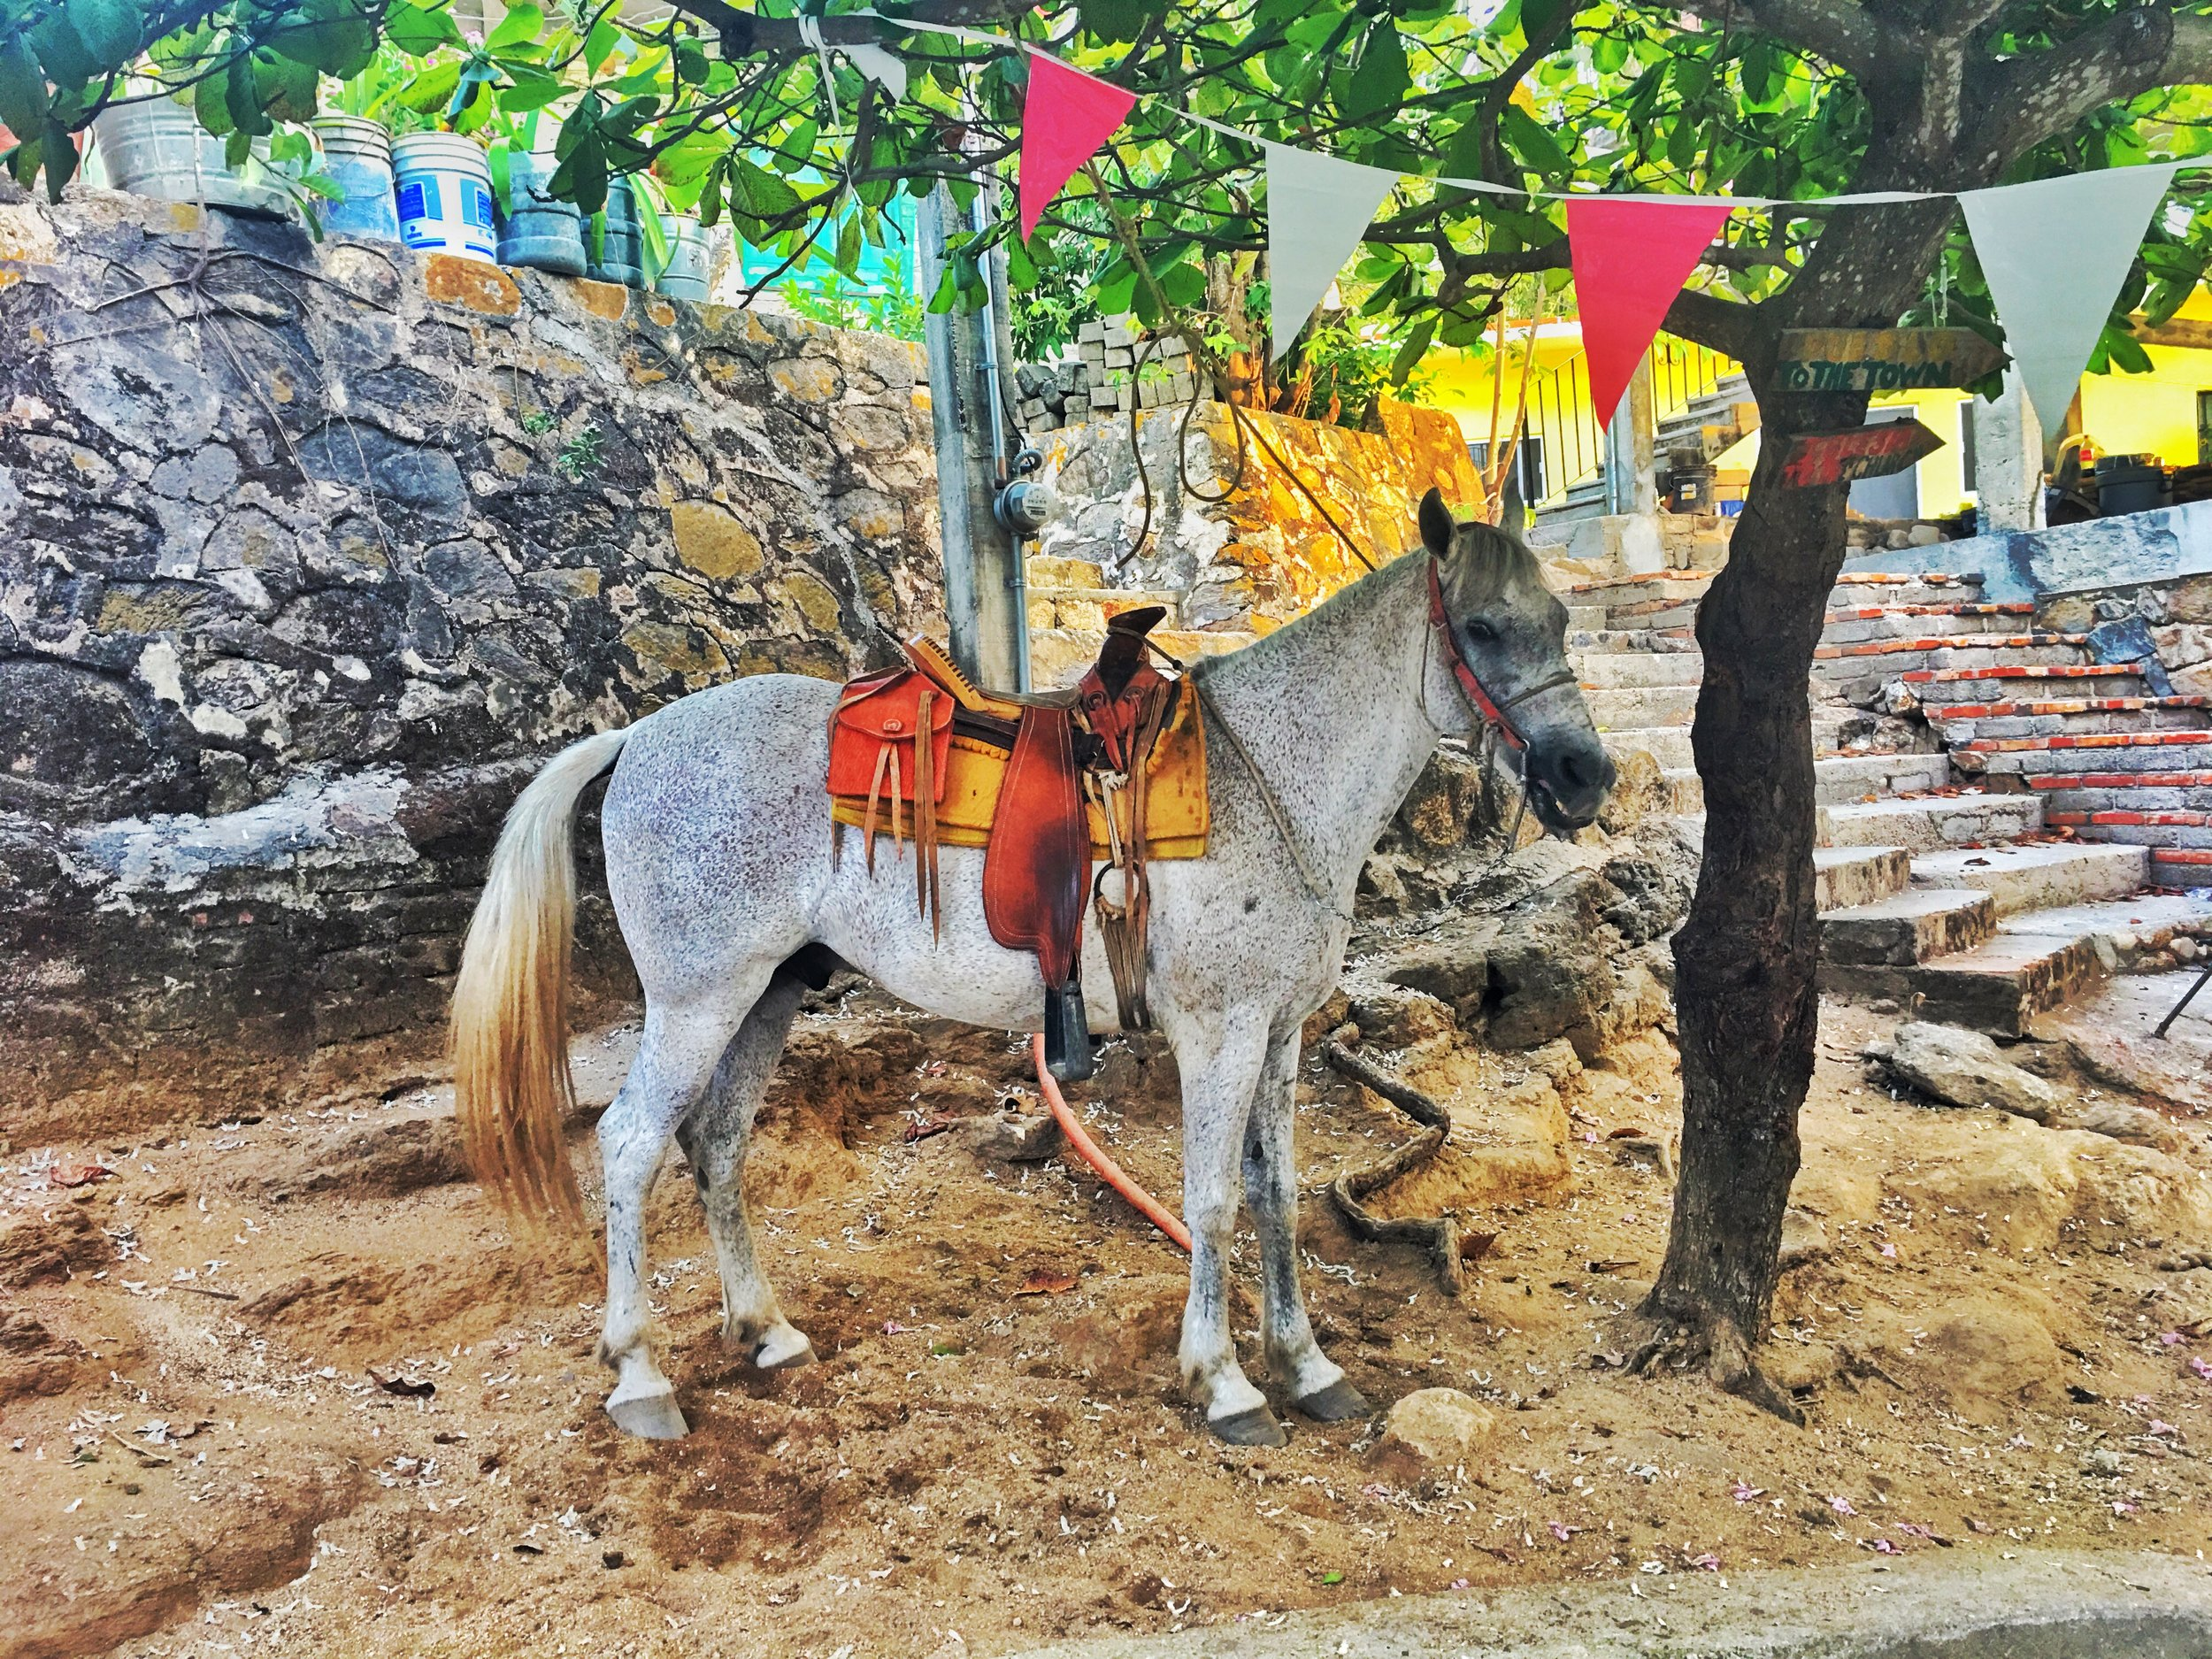 The only transportation in Yelapa town